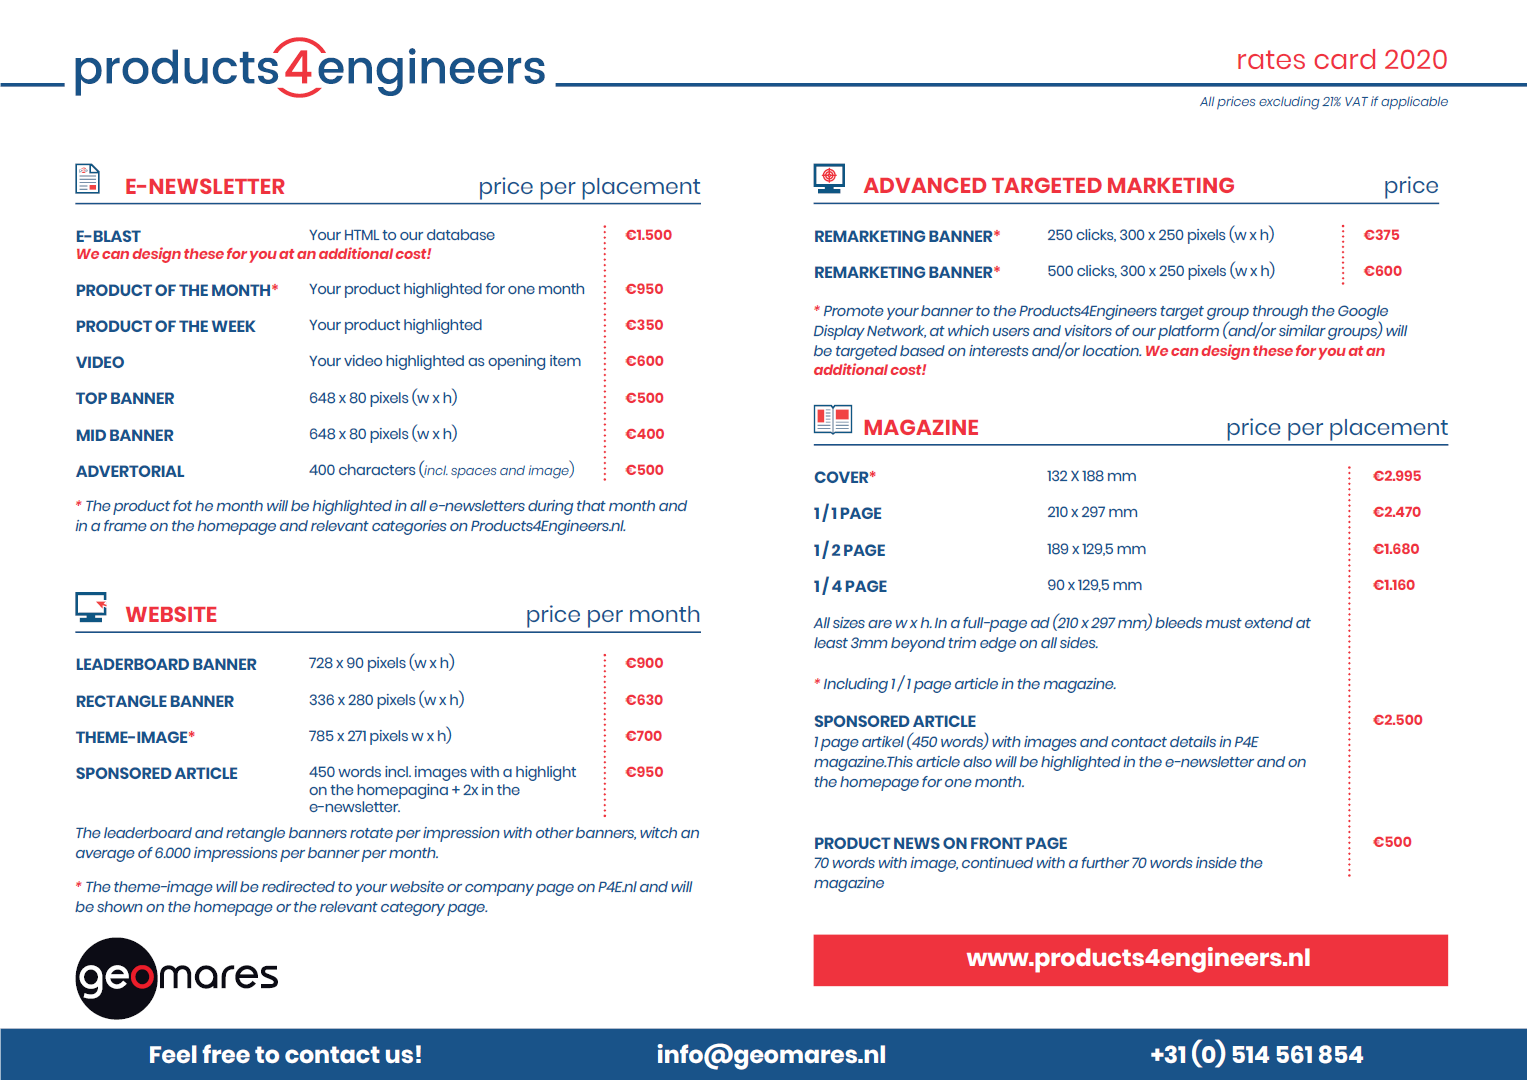 Products4Engineers infosheet 2020 - Front